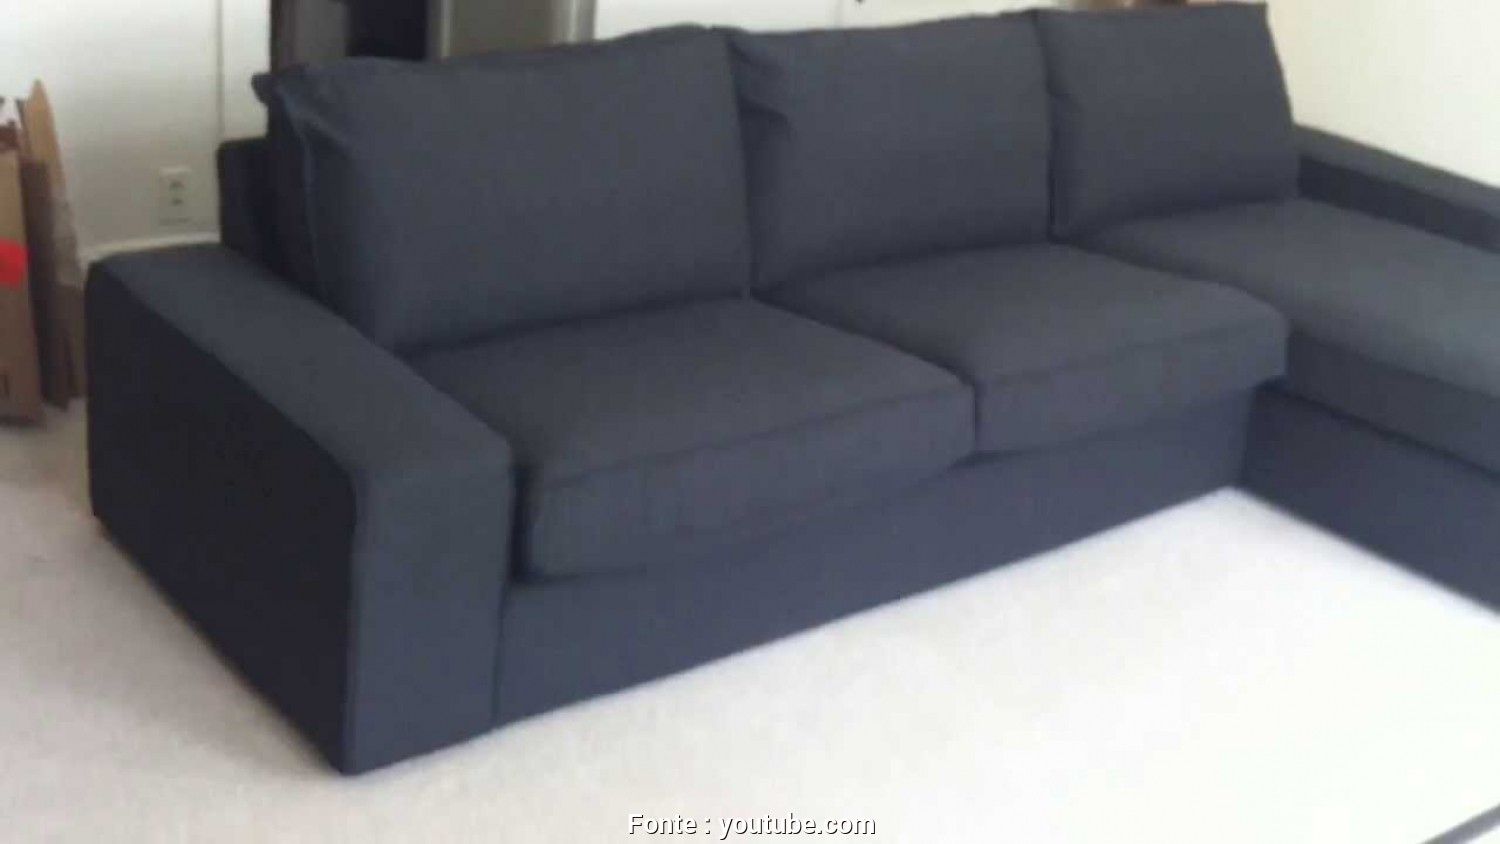 Divano Kivik Ikea Montaggio, Eccezionale Ikea Kivik Sofa Assembly Service Video In Upper Marlboro MD By Furniture Assembly Experts,, YouTube